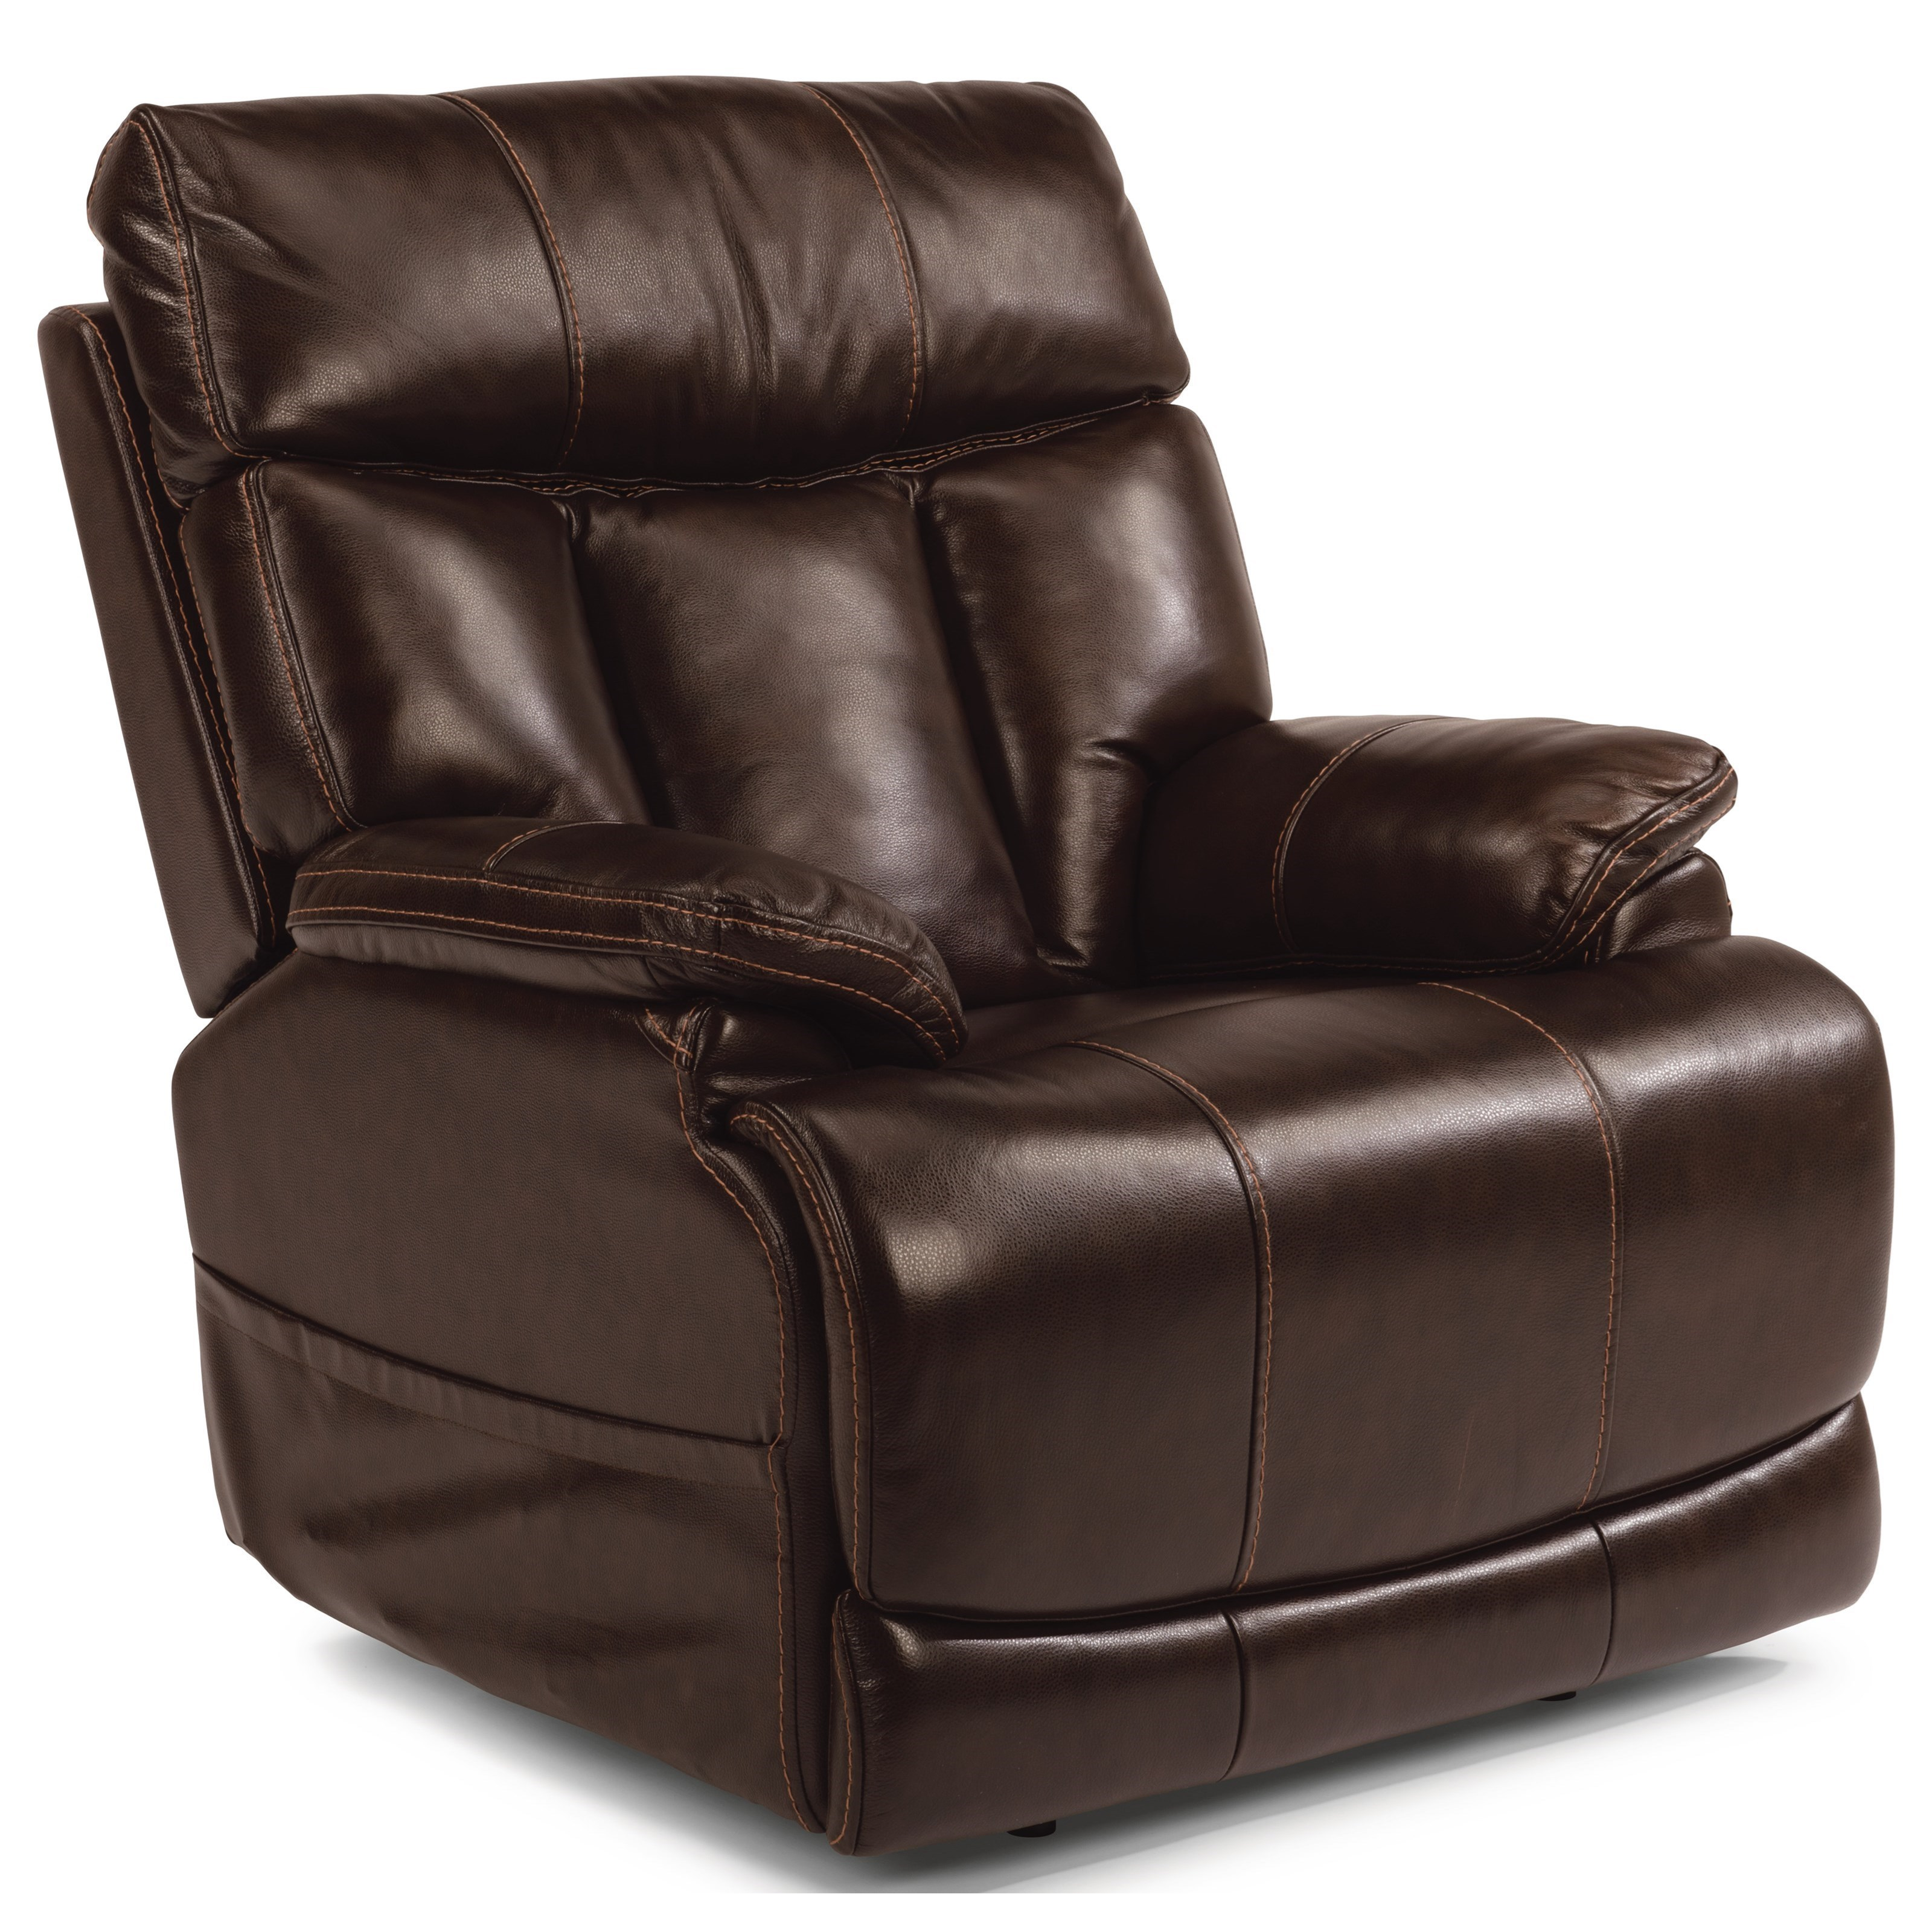 Flexsteel Latitudes Clive Power Recliner With Power